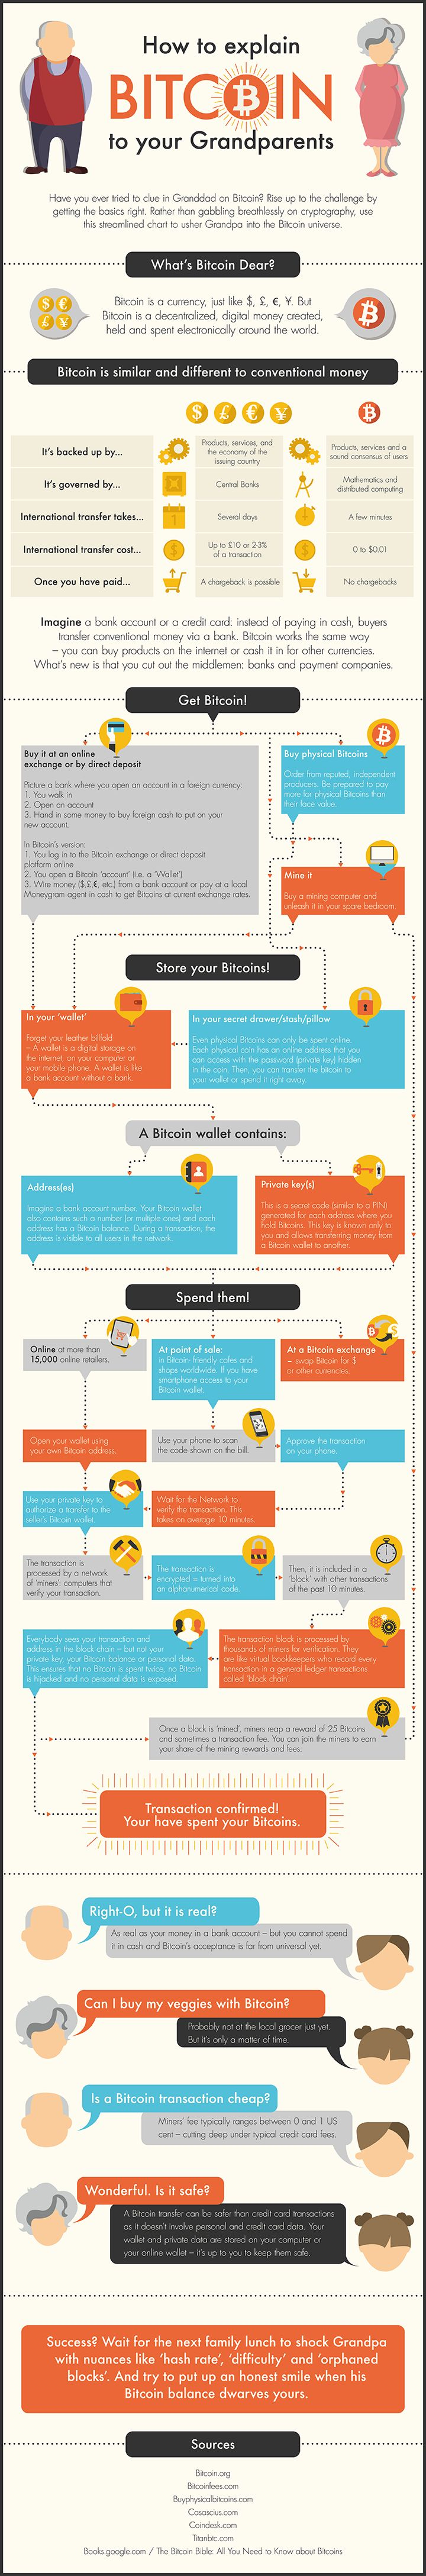 Here is how to explain #Bitcoin to your grandparents, in infographic form.